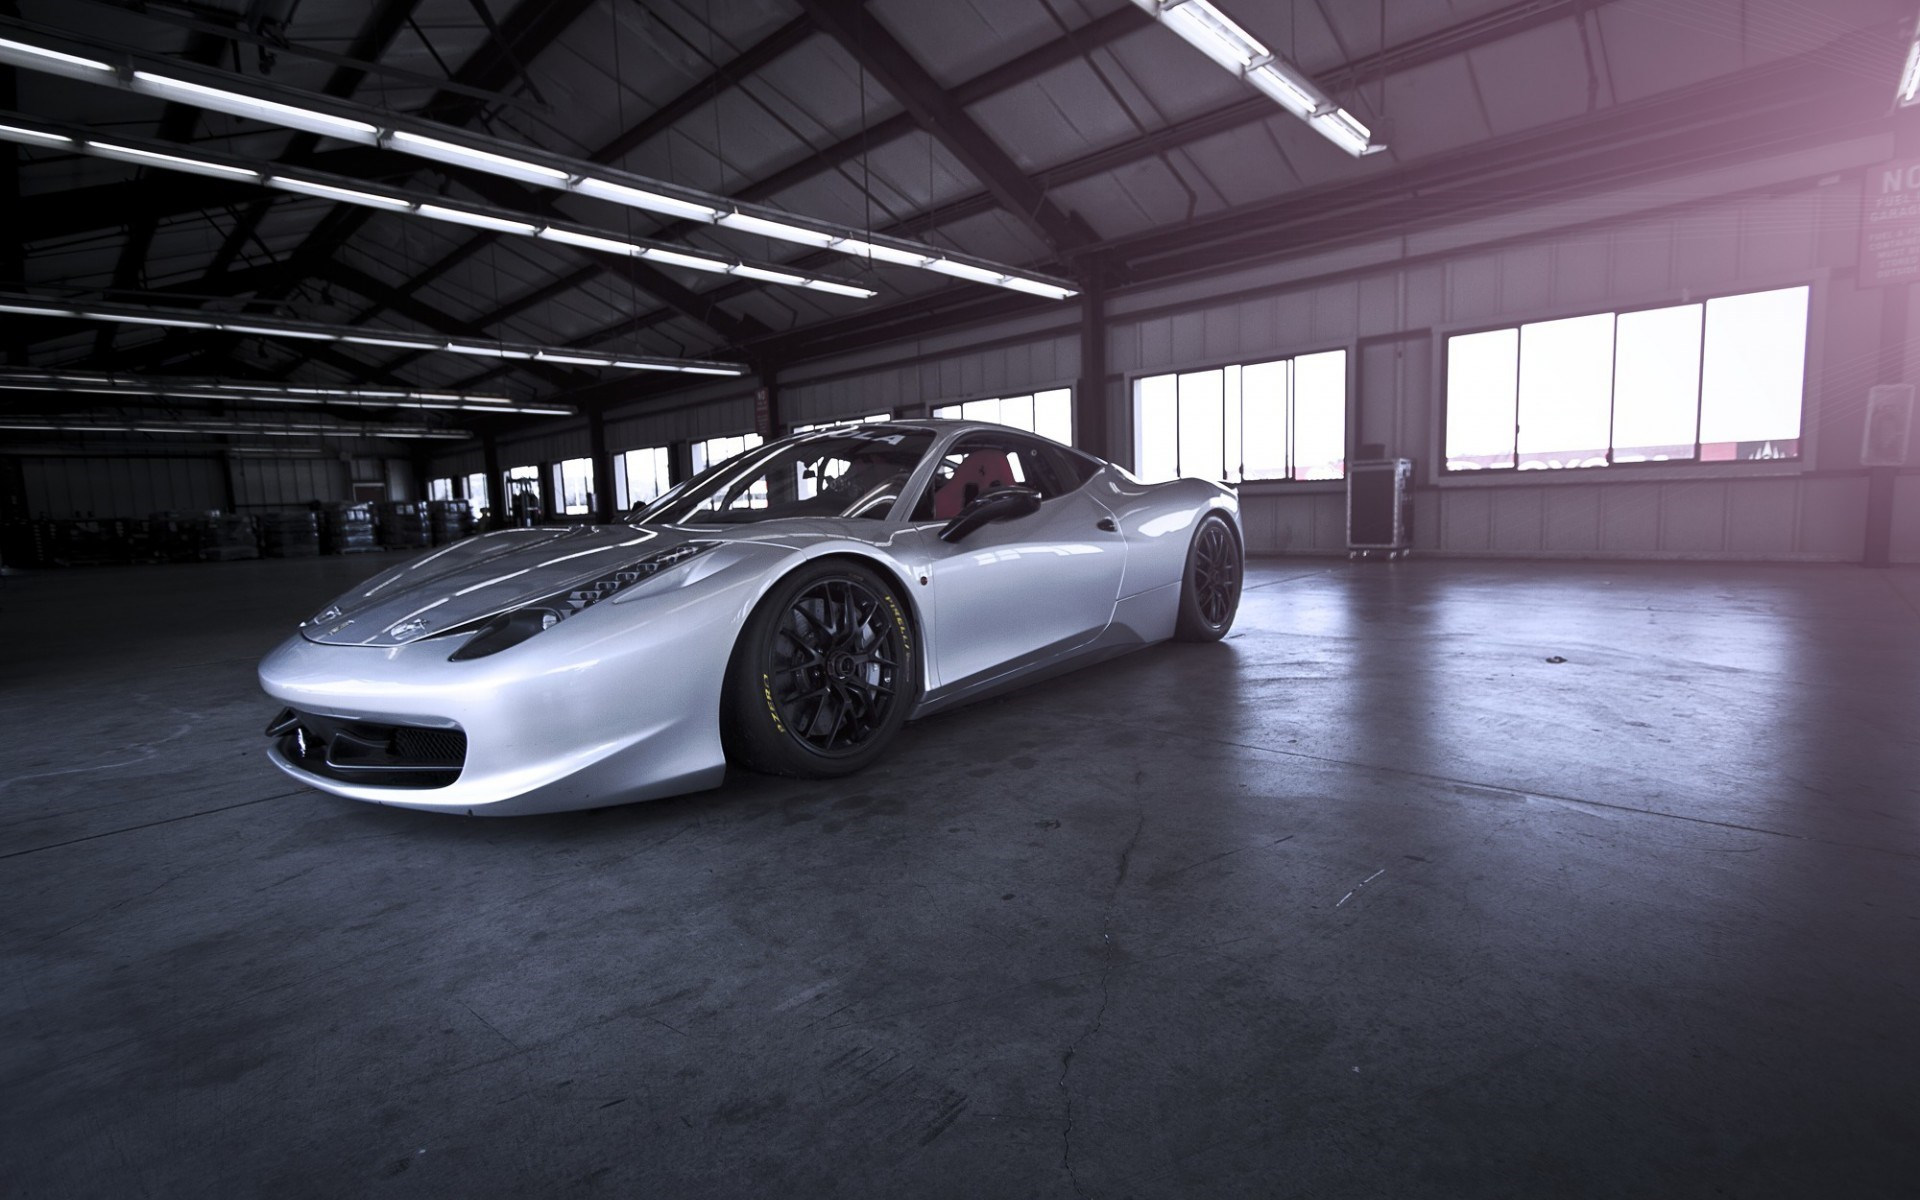 Ferrari 458 Challenge Warehouse